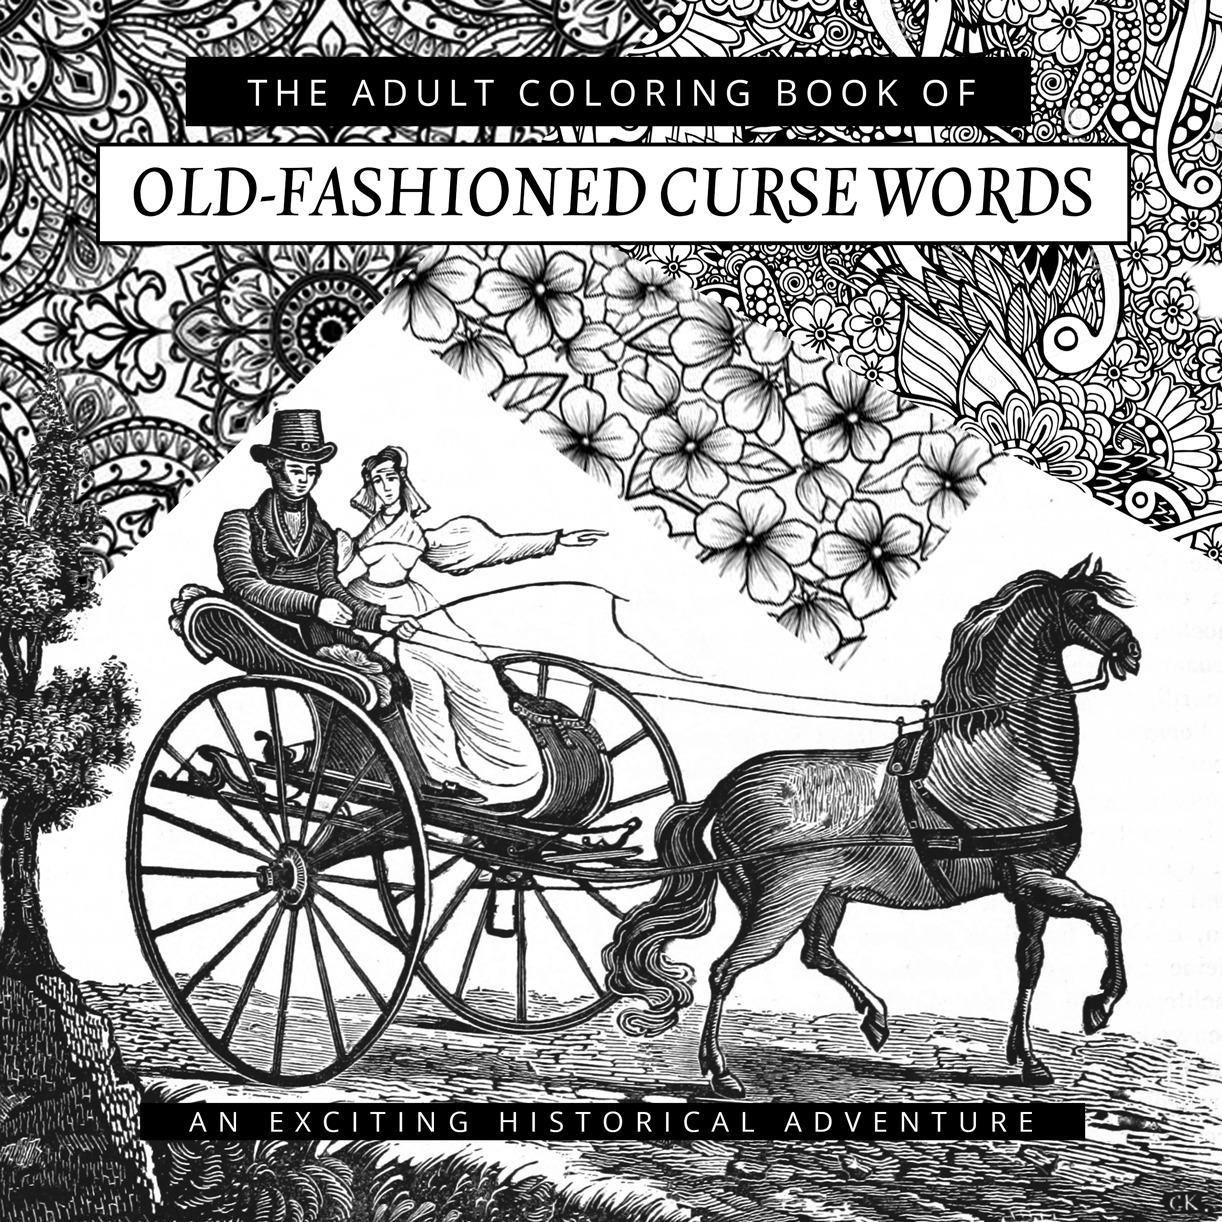 How To Publish An Adult Coloring Book (and Why You Should